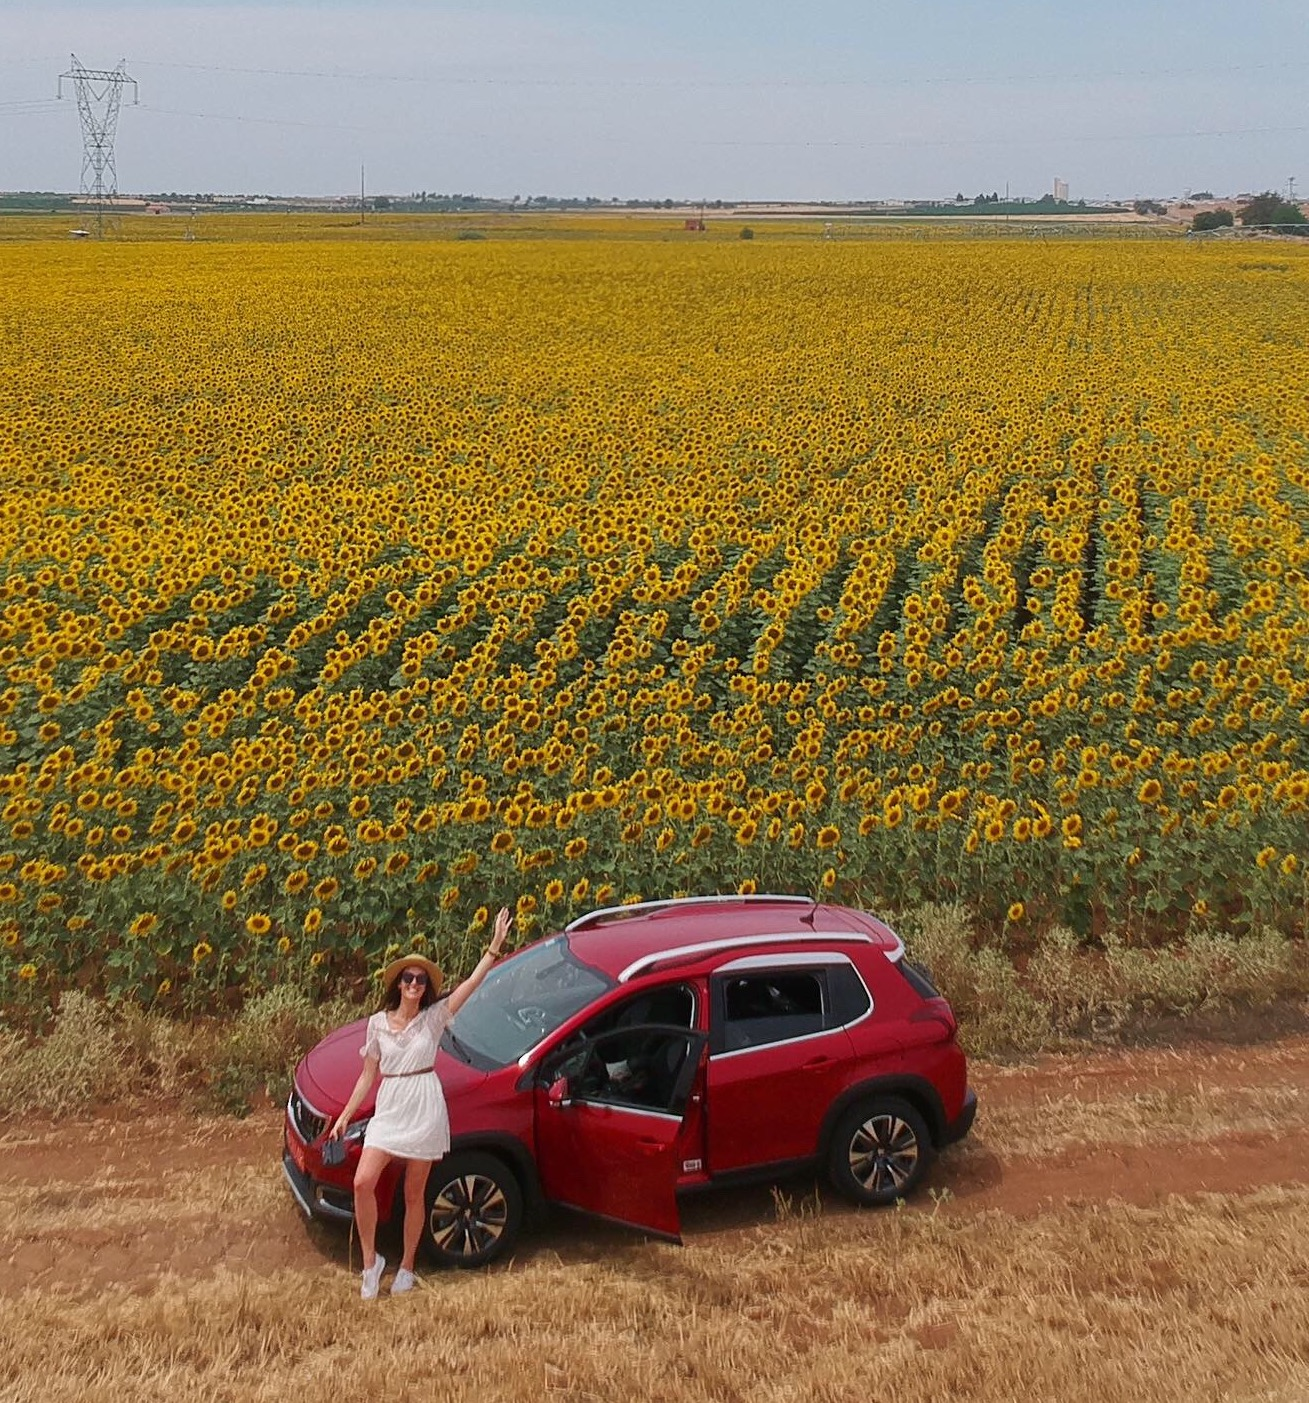 Finding fields of sunflowers near Beja, Portugal while on a roadtrip in my Peugeot from  AutoFrance